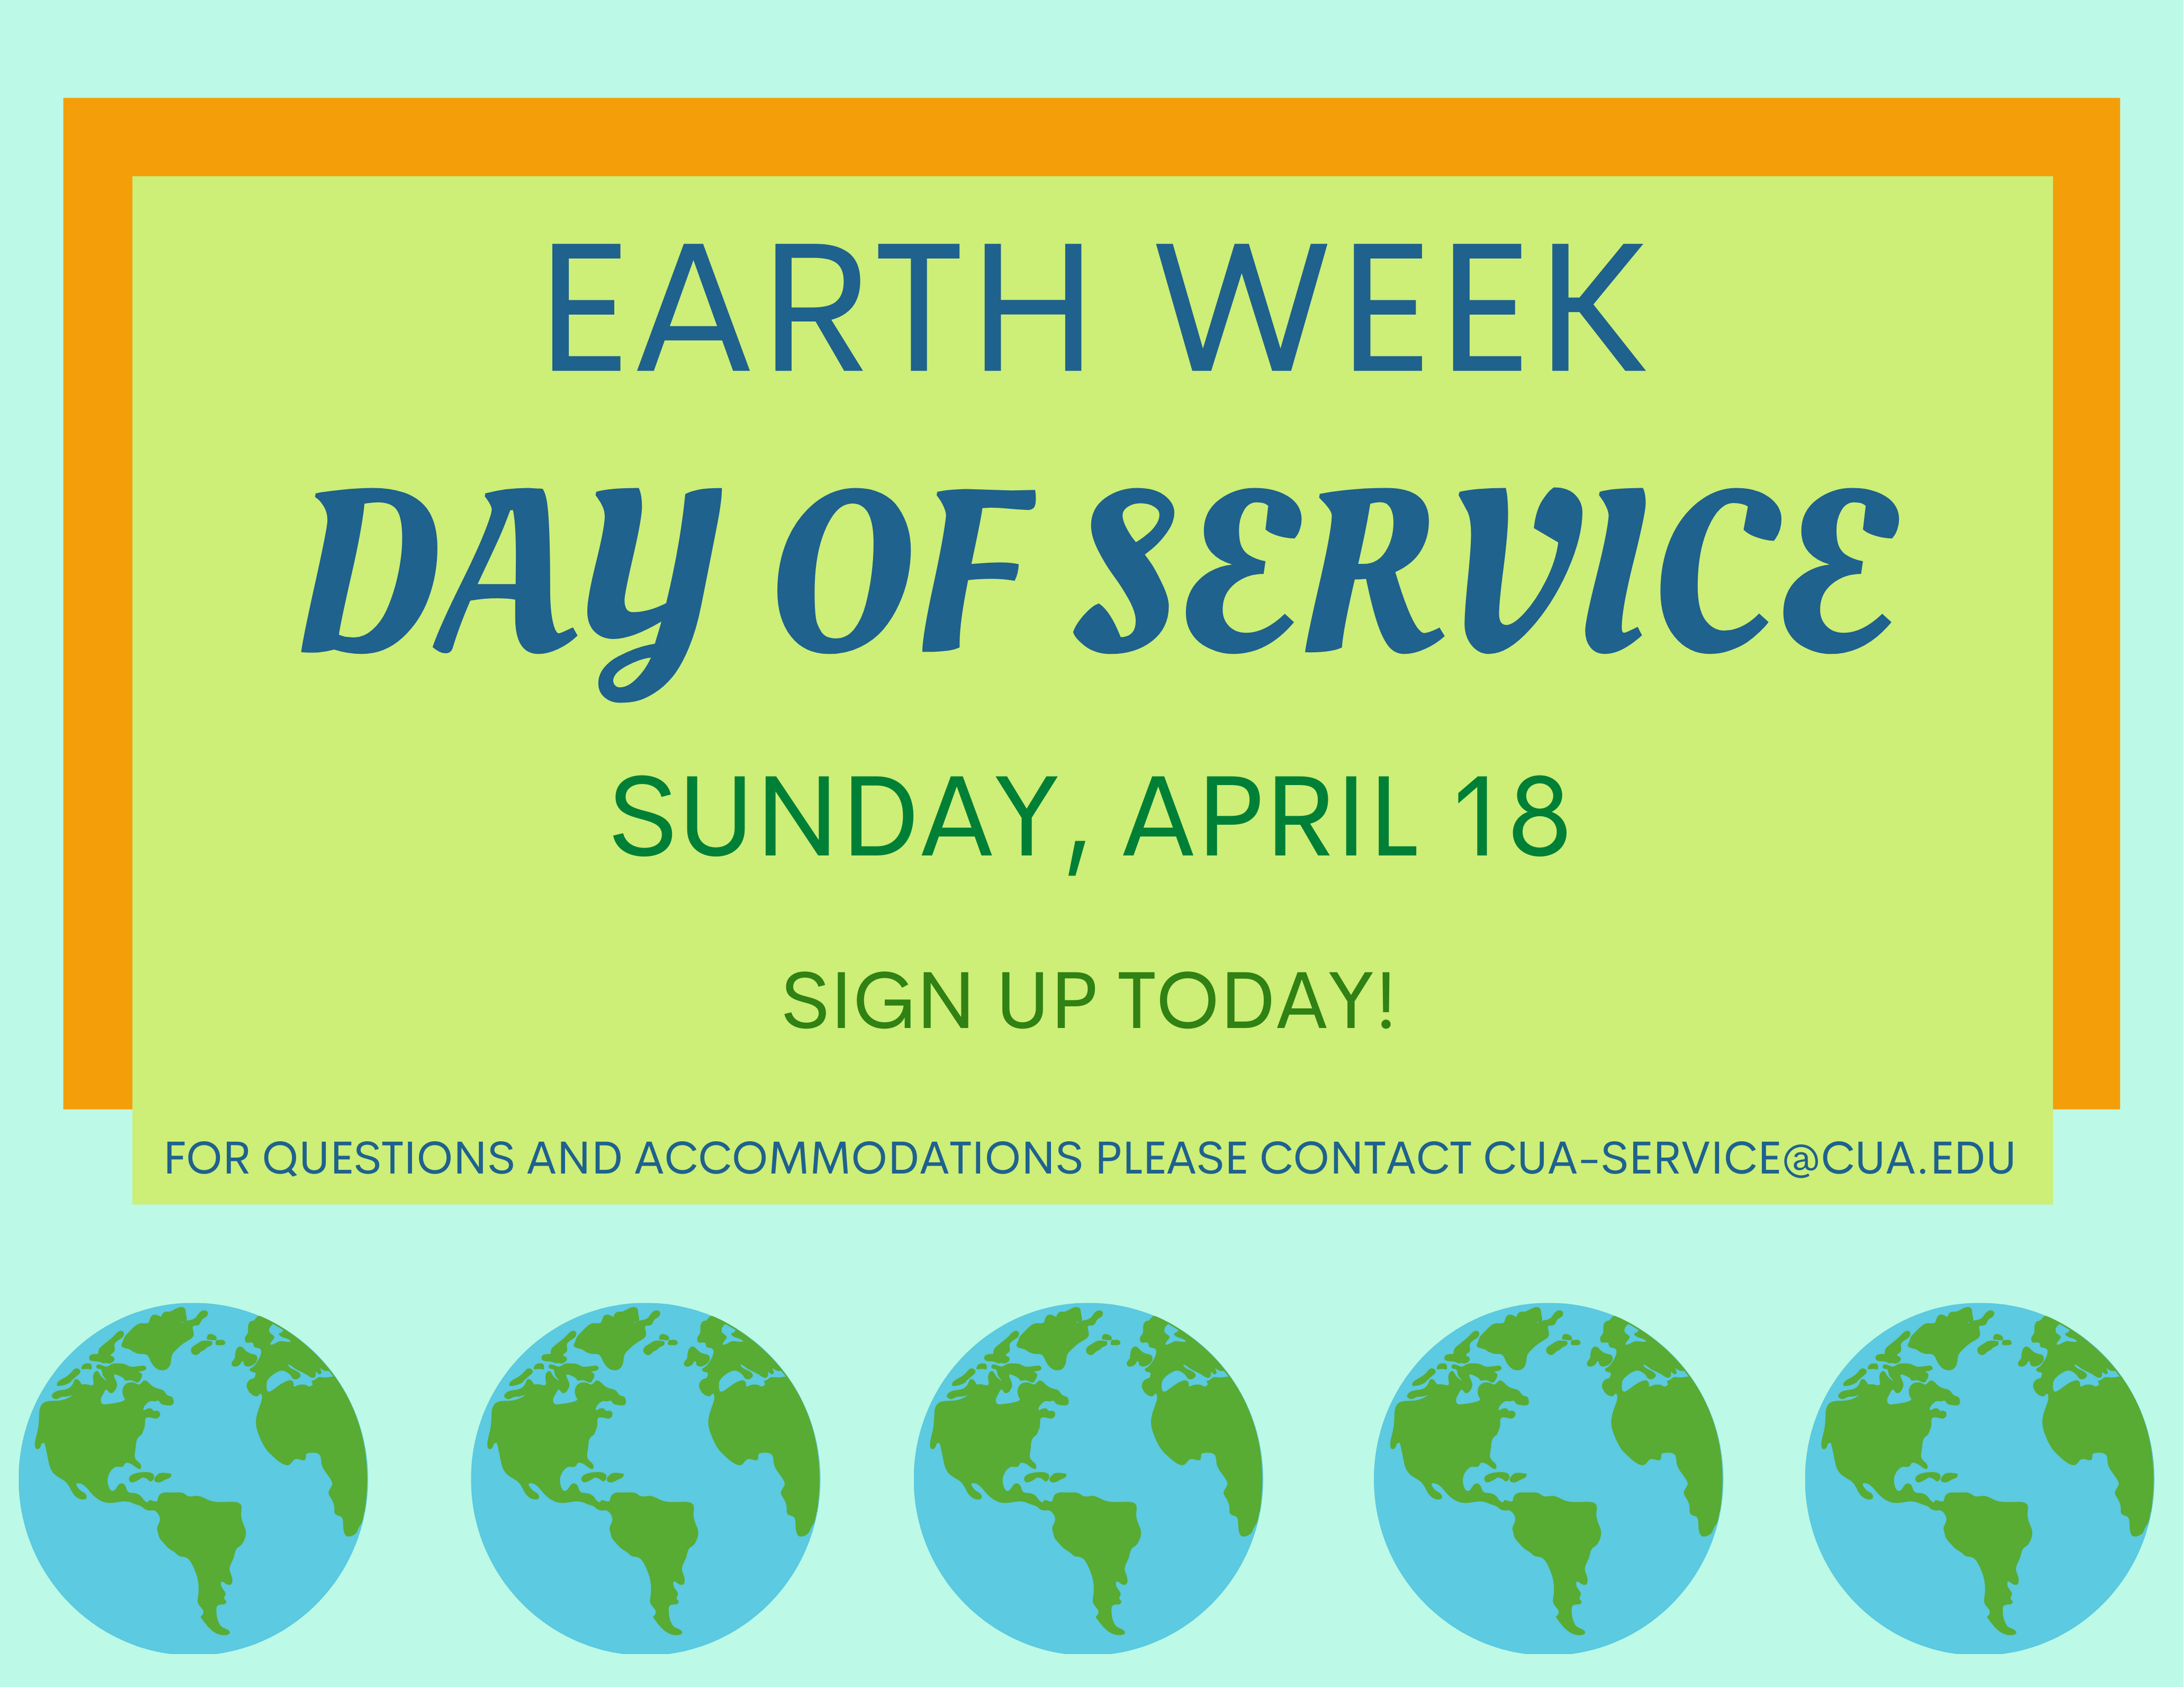 Earth Week's Day of Service